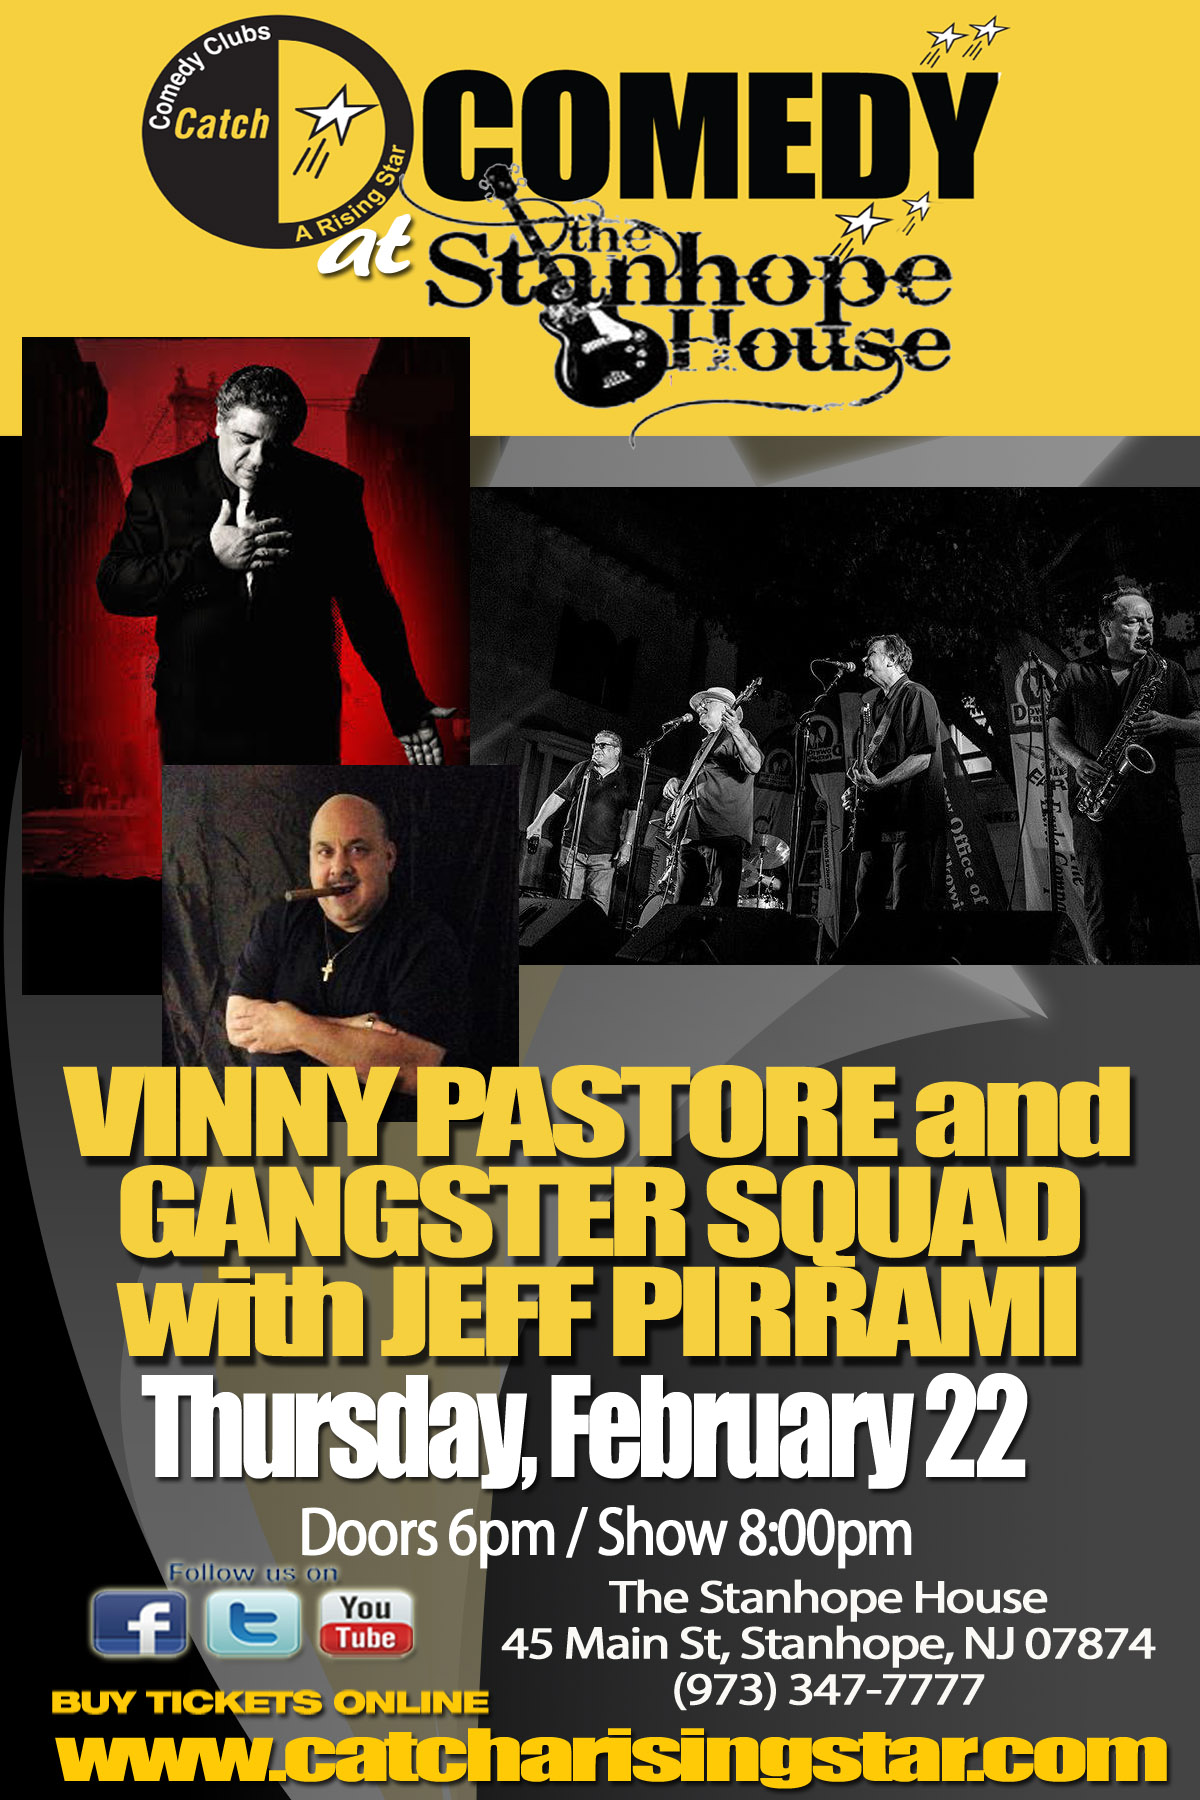 Vinny Pastore & Gangster Squad with Jeff Pirrami at The Stanhope House